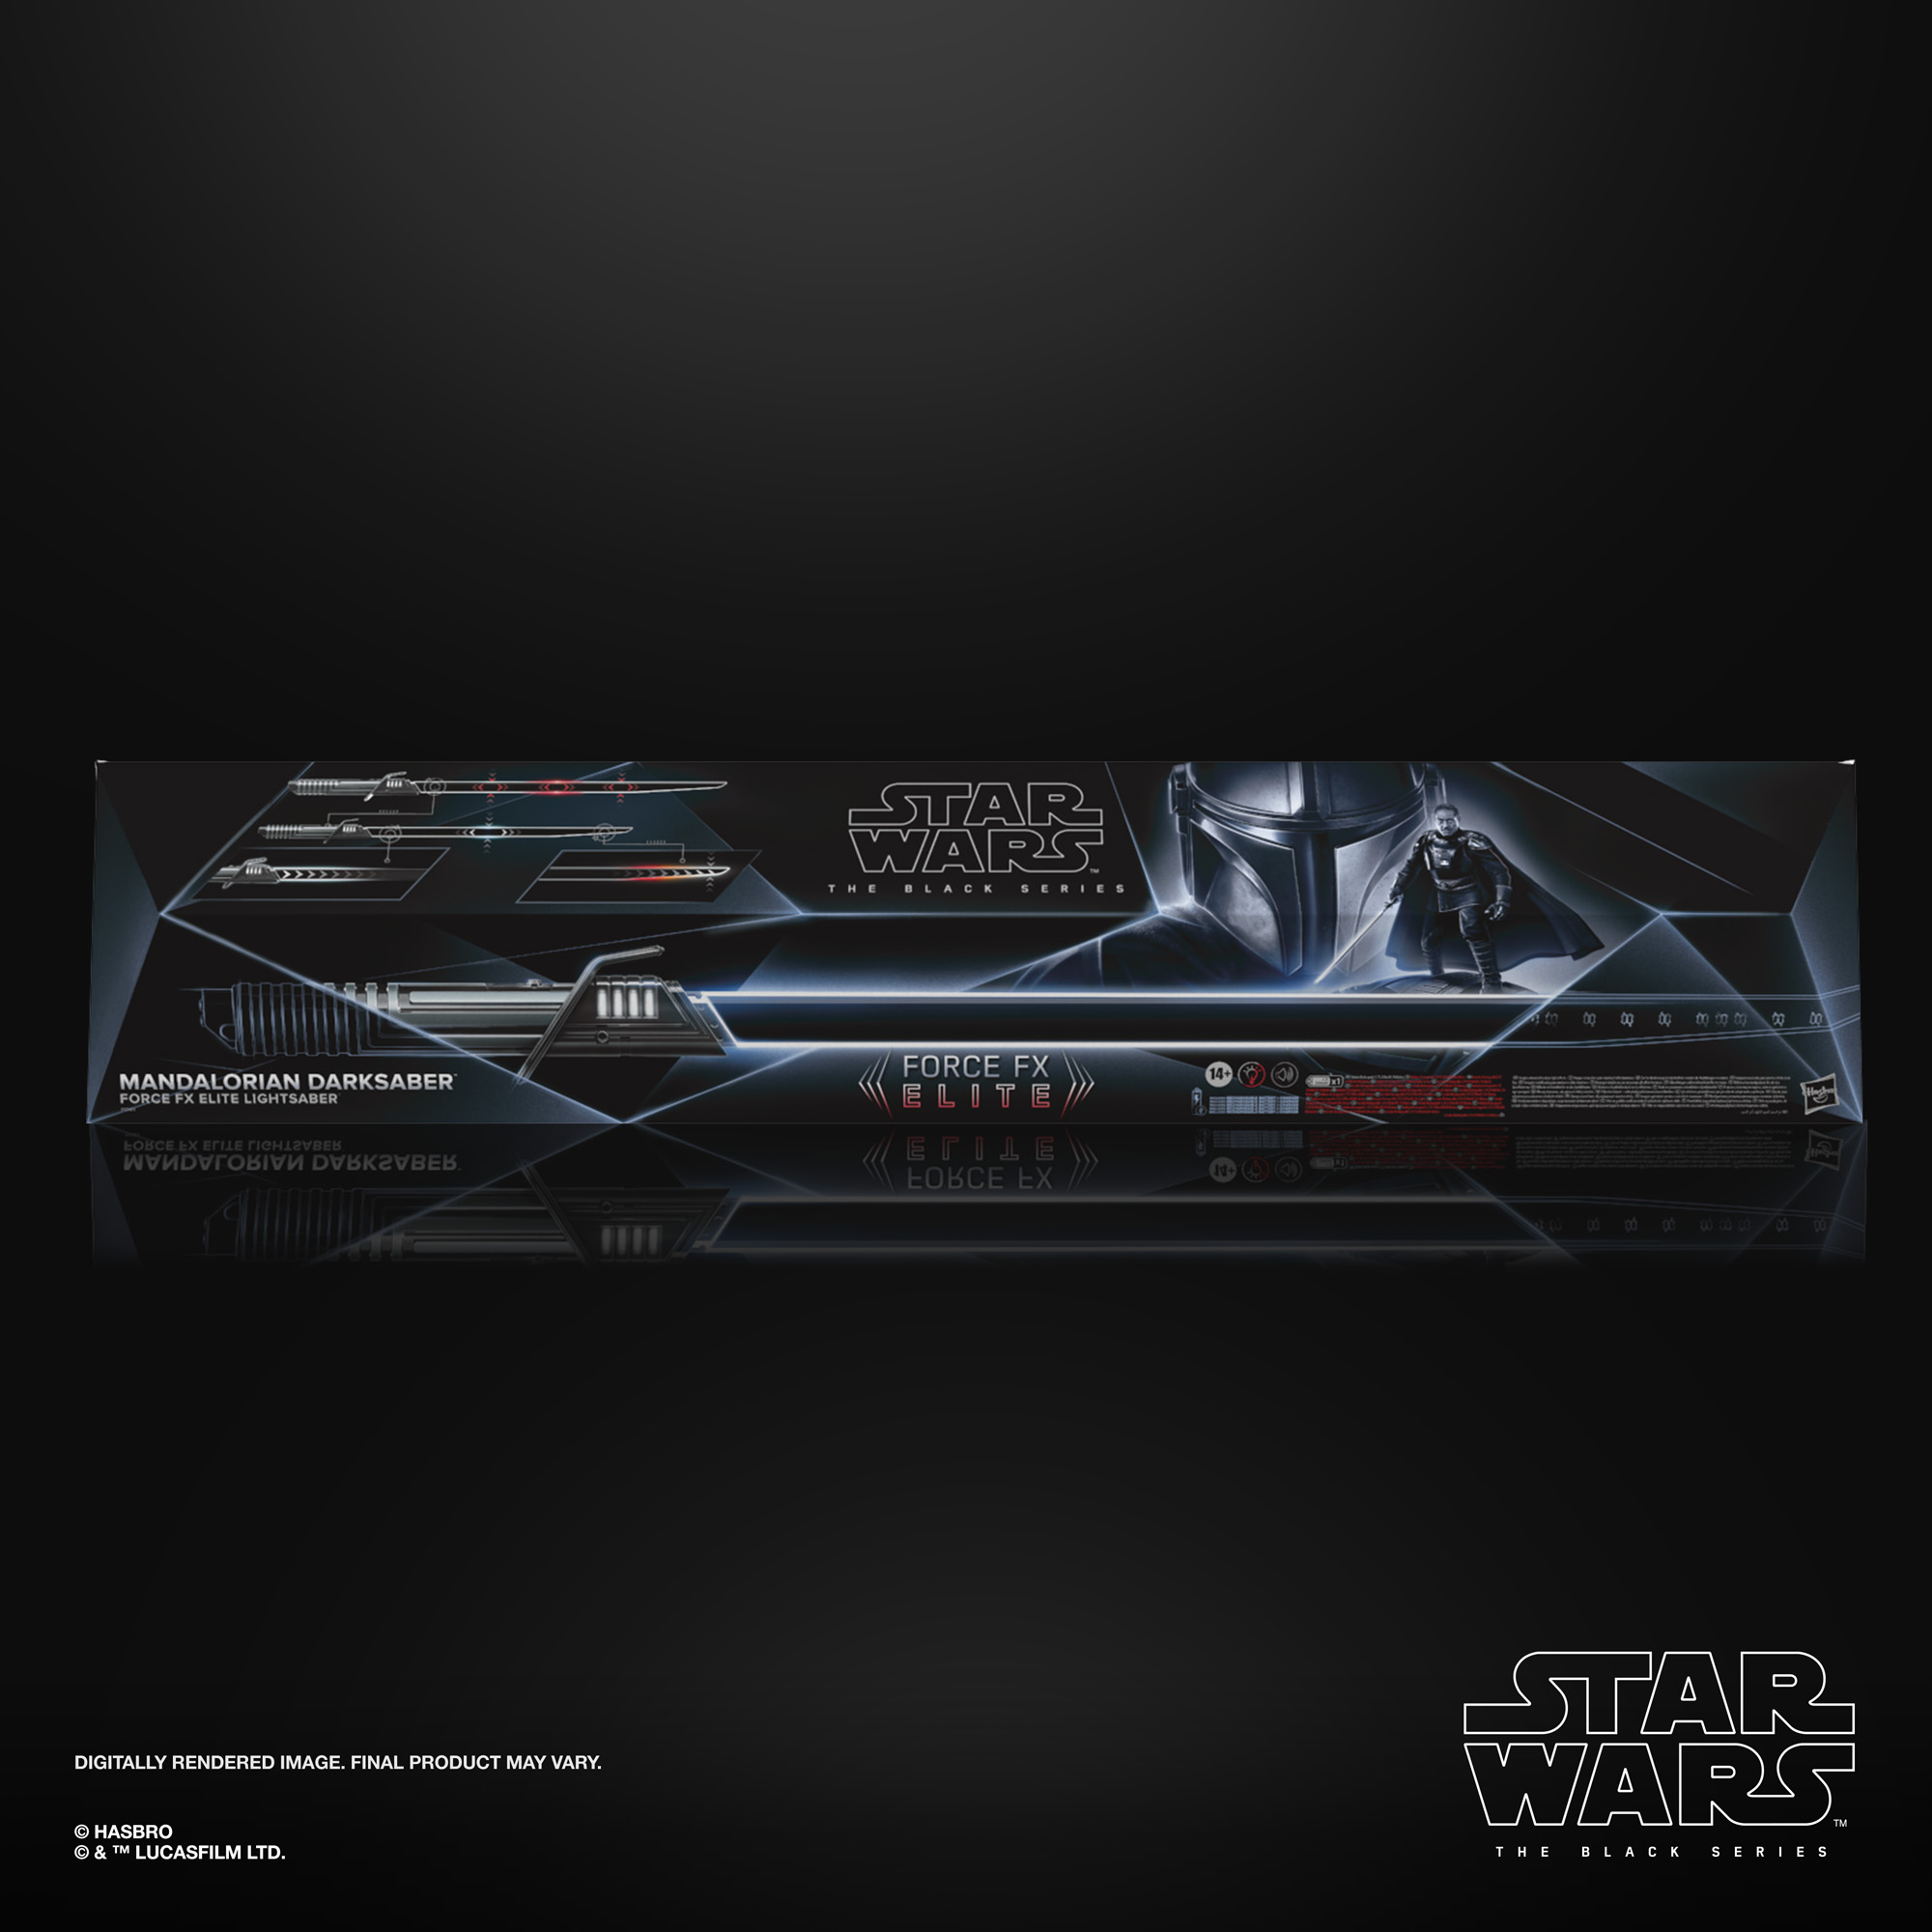 STAR WARS THE BLACK SERIES THE MANDALORIAN DARKSABER FORCE FX ELITE LIGHTSABER – in pck